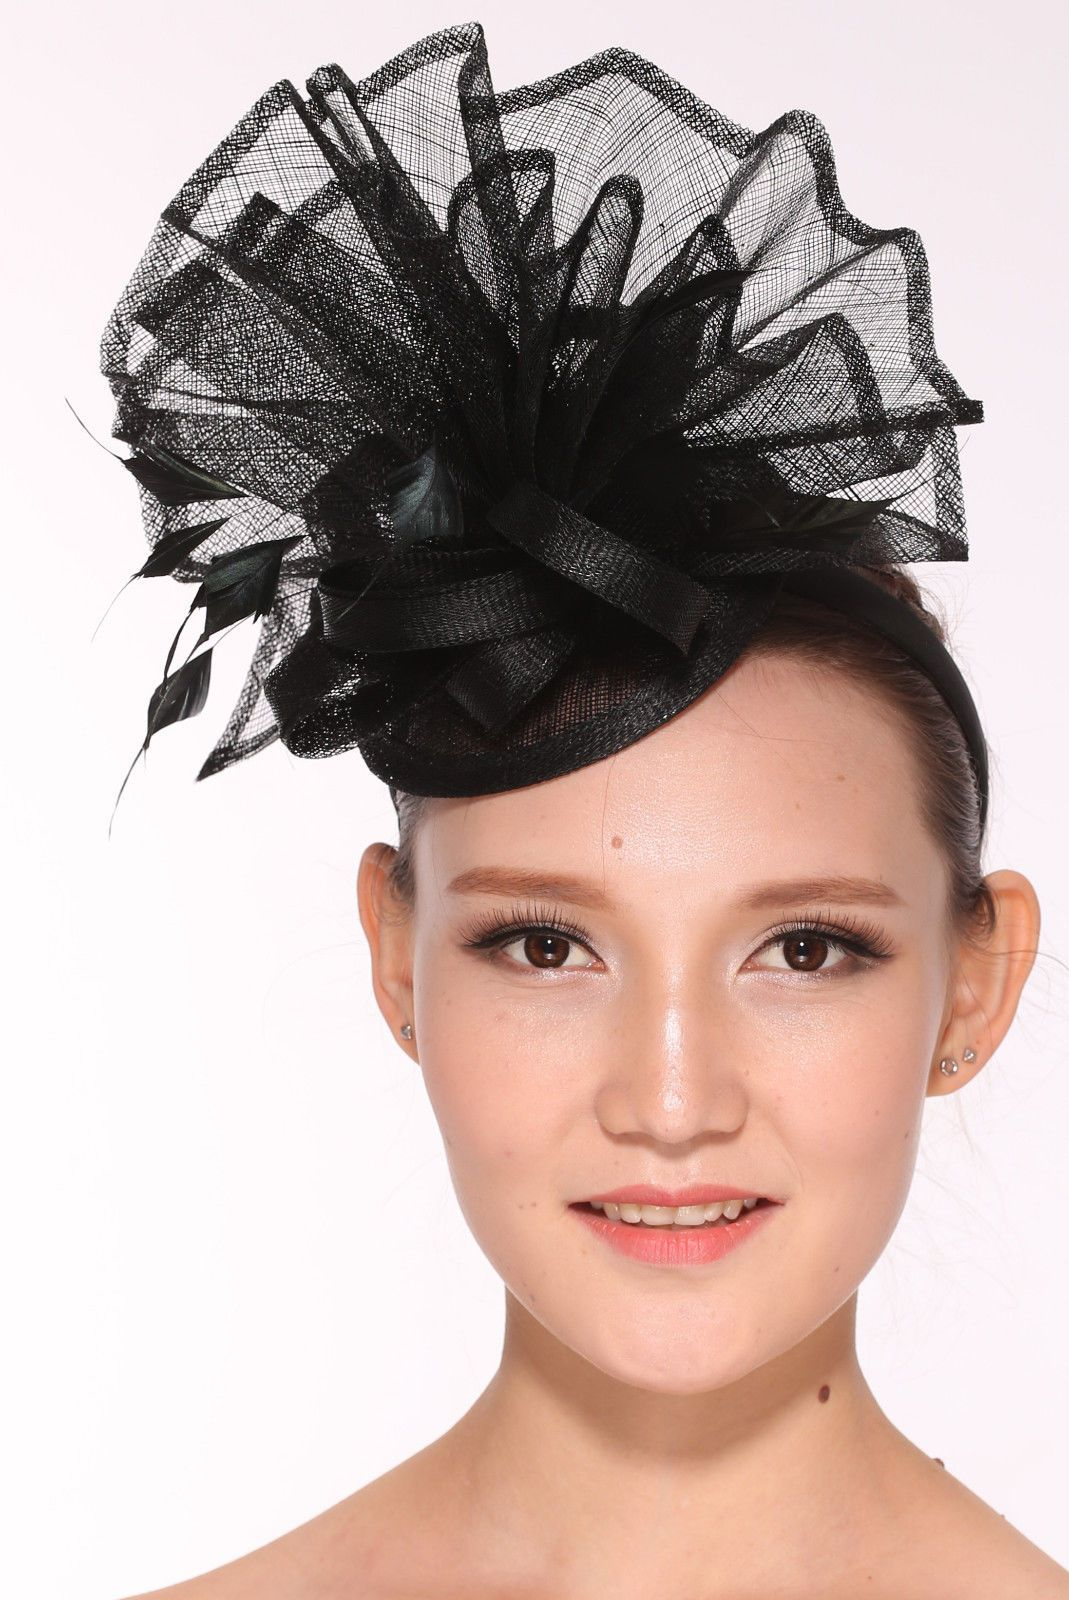 feab019ccf1 Kentucky Derby Feather Floral Sinamay Headband Fascinator Cocktail Black